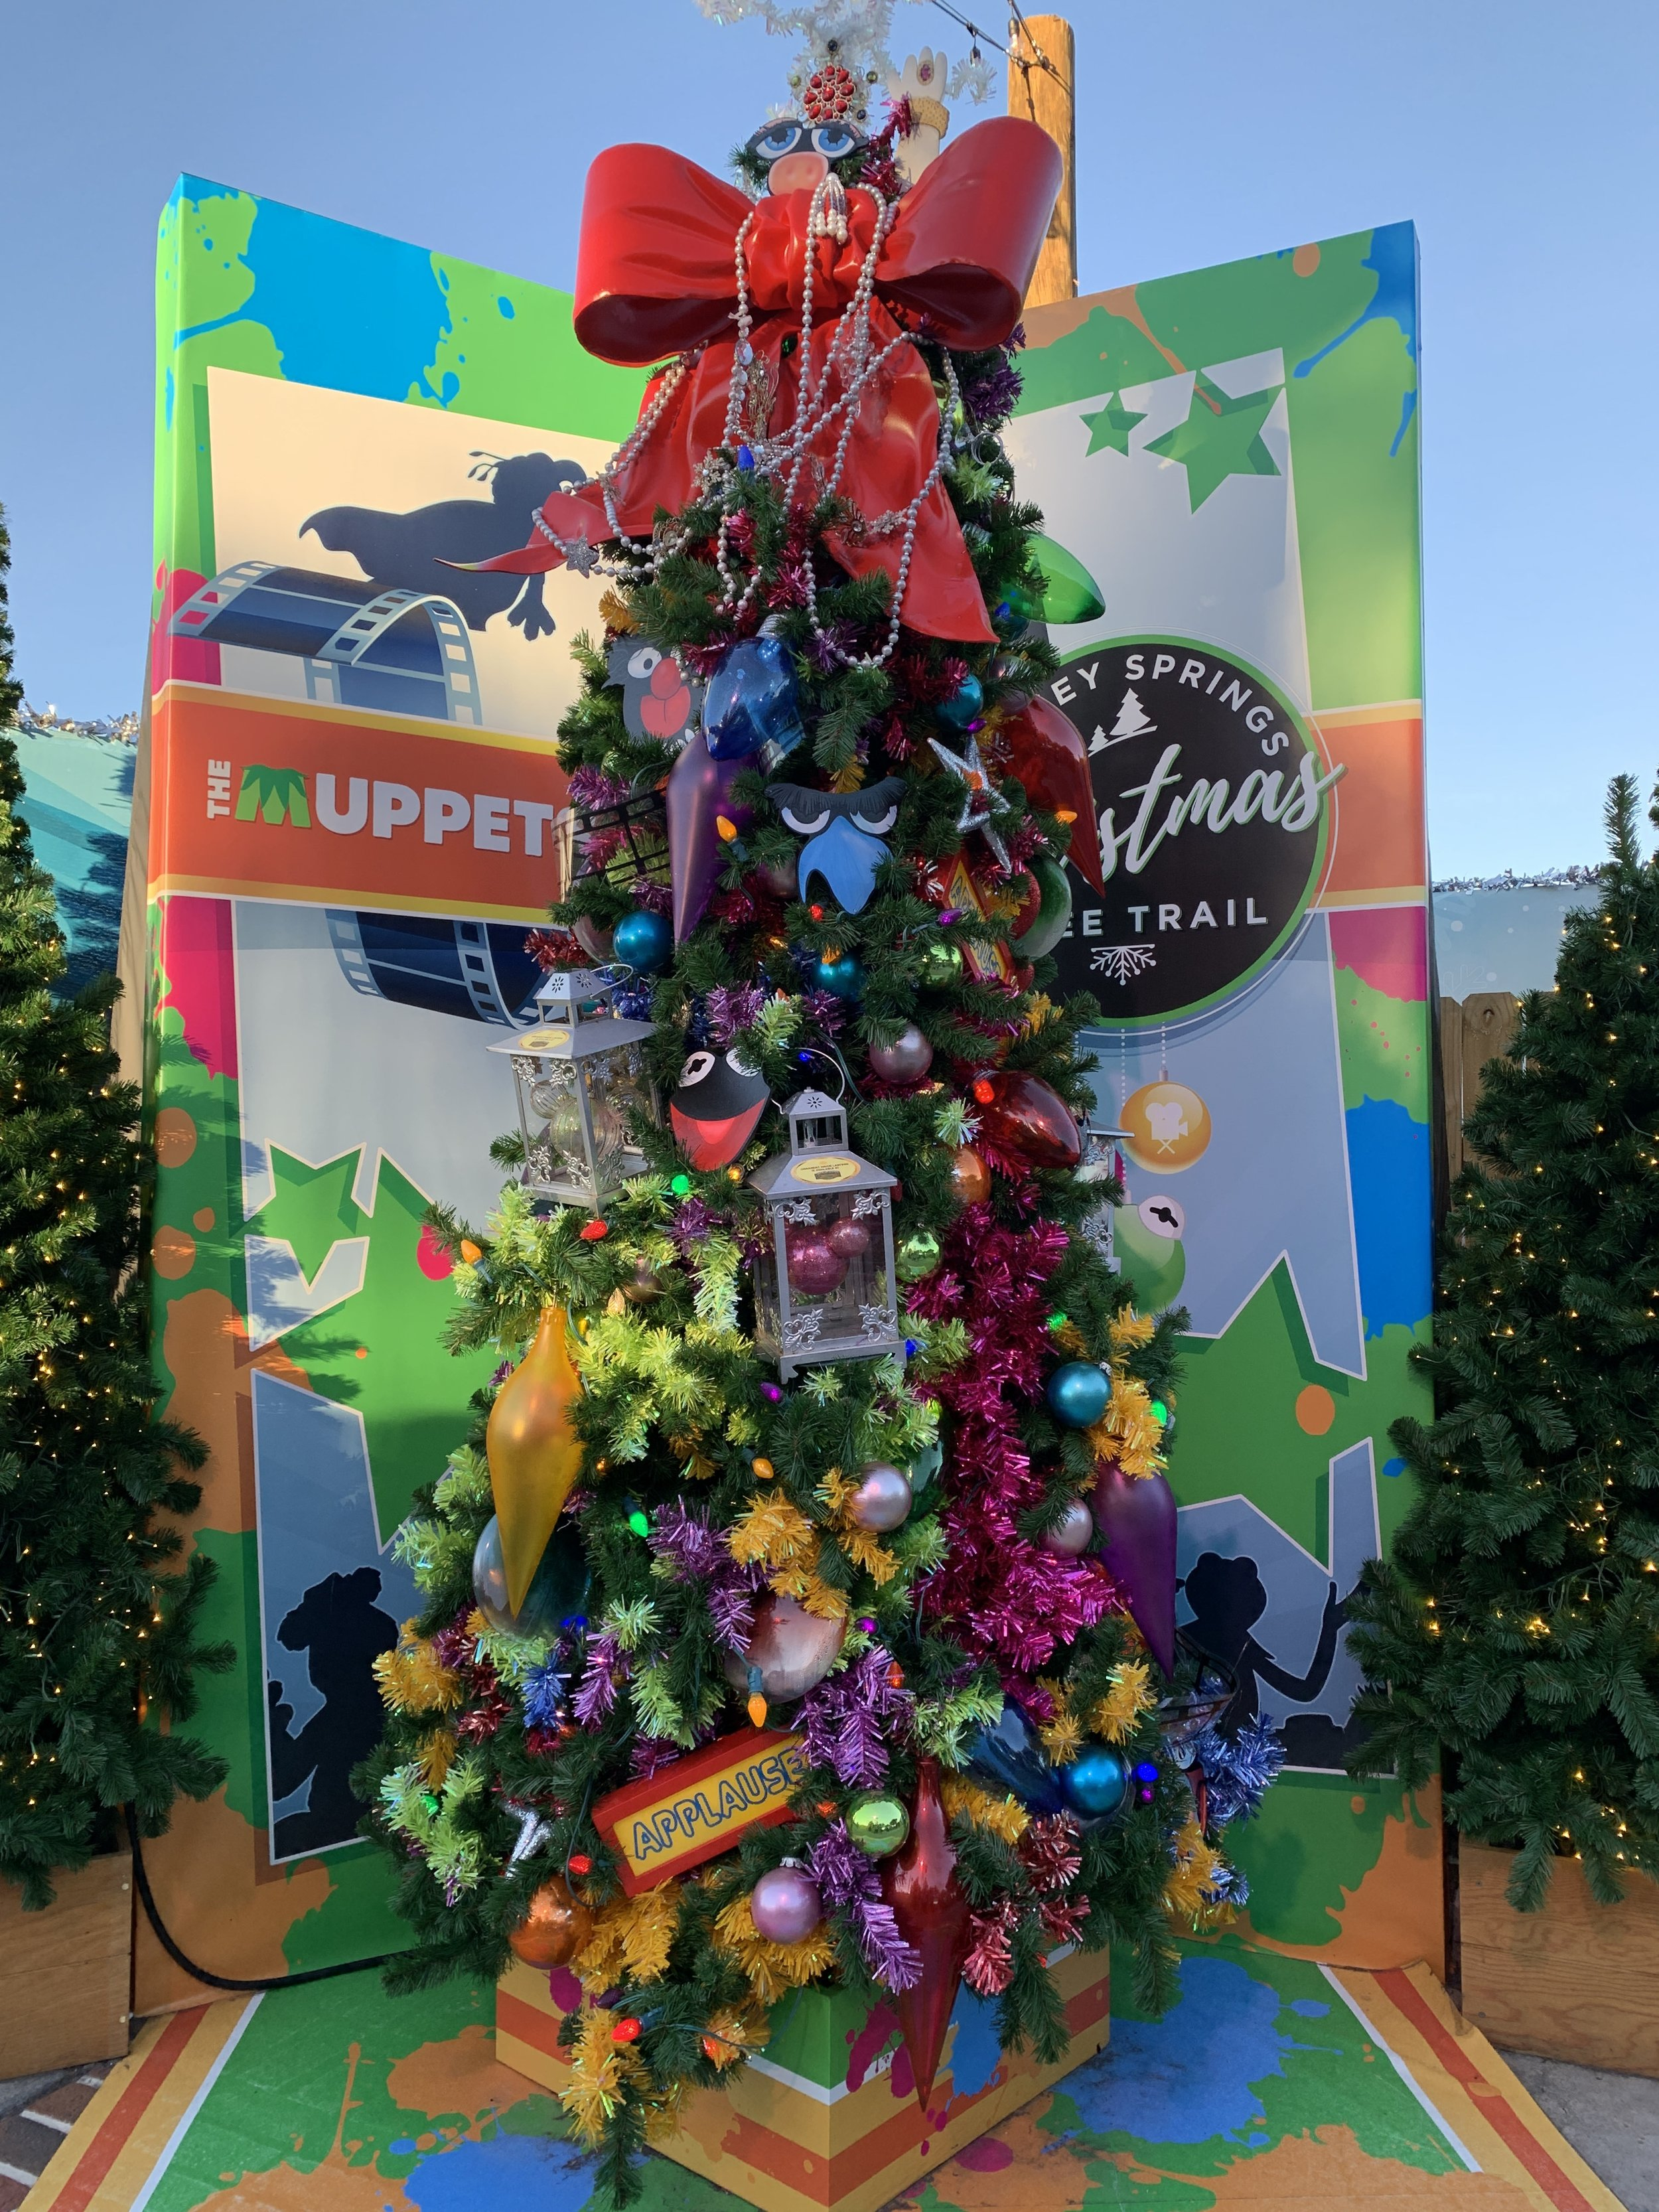 The Muppets Tree